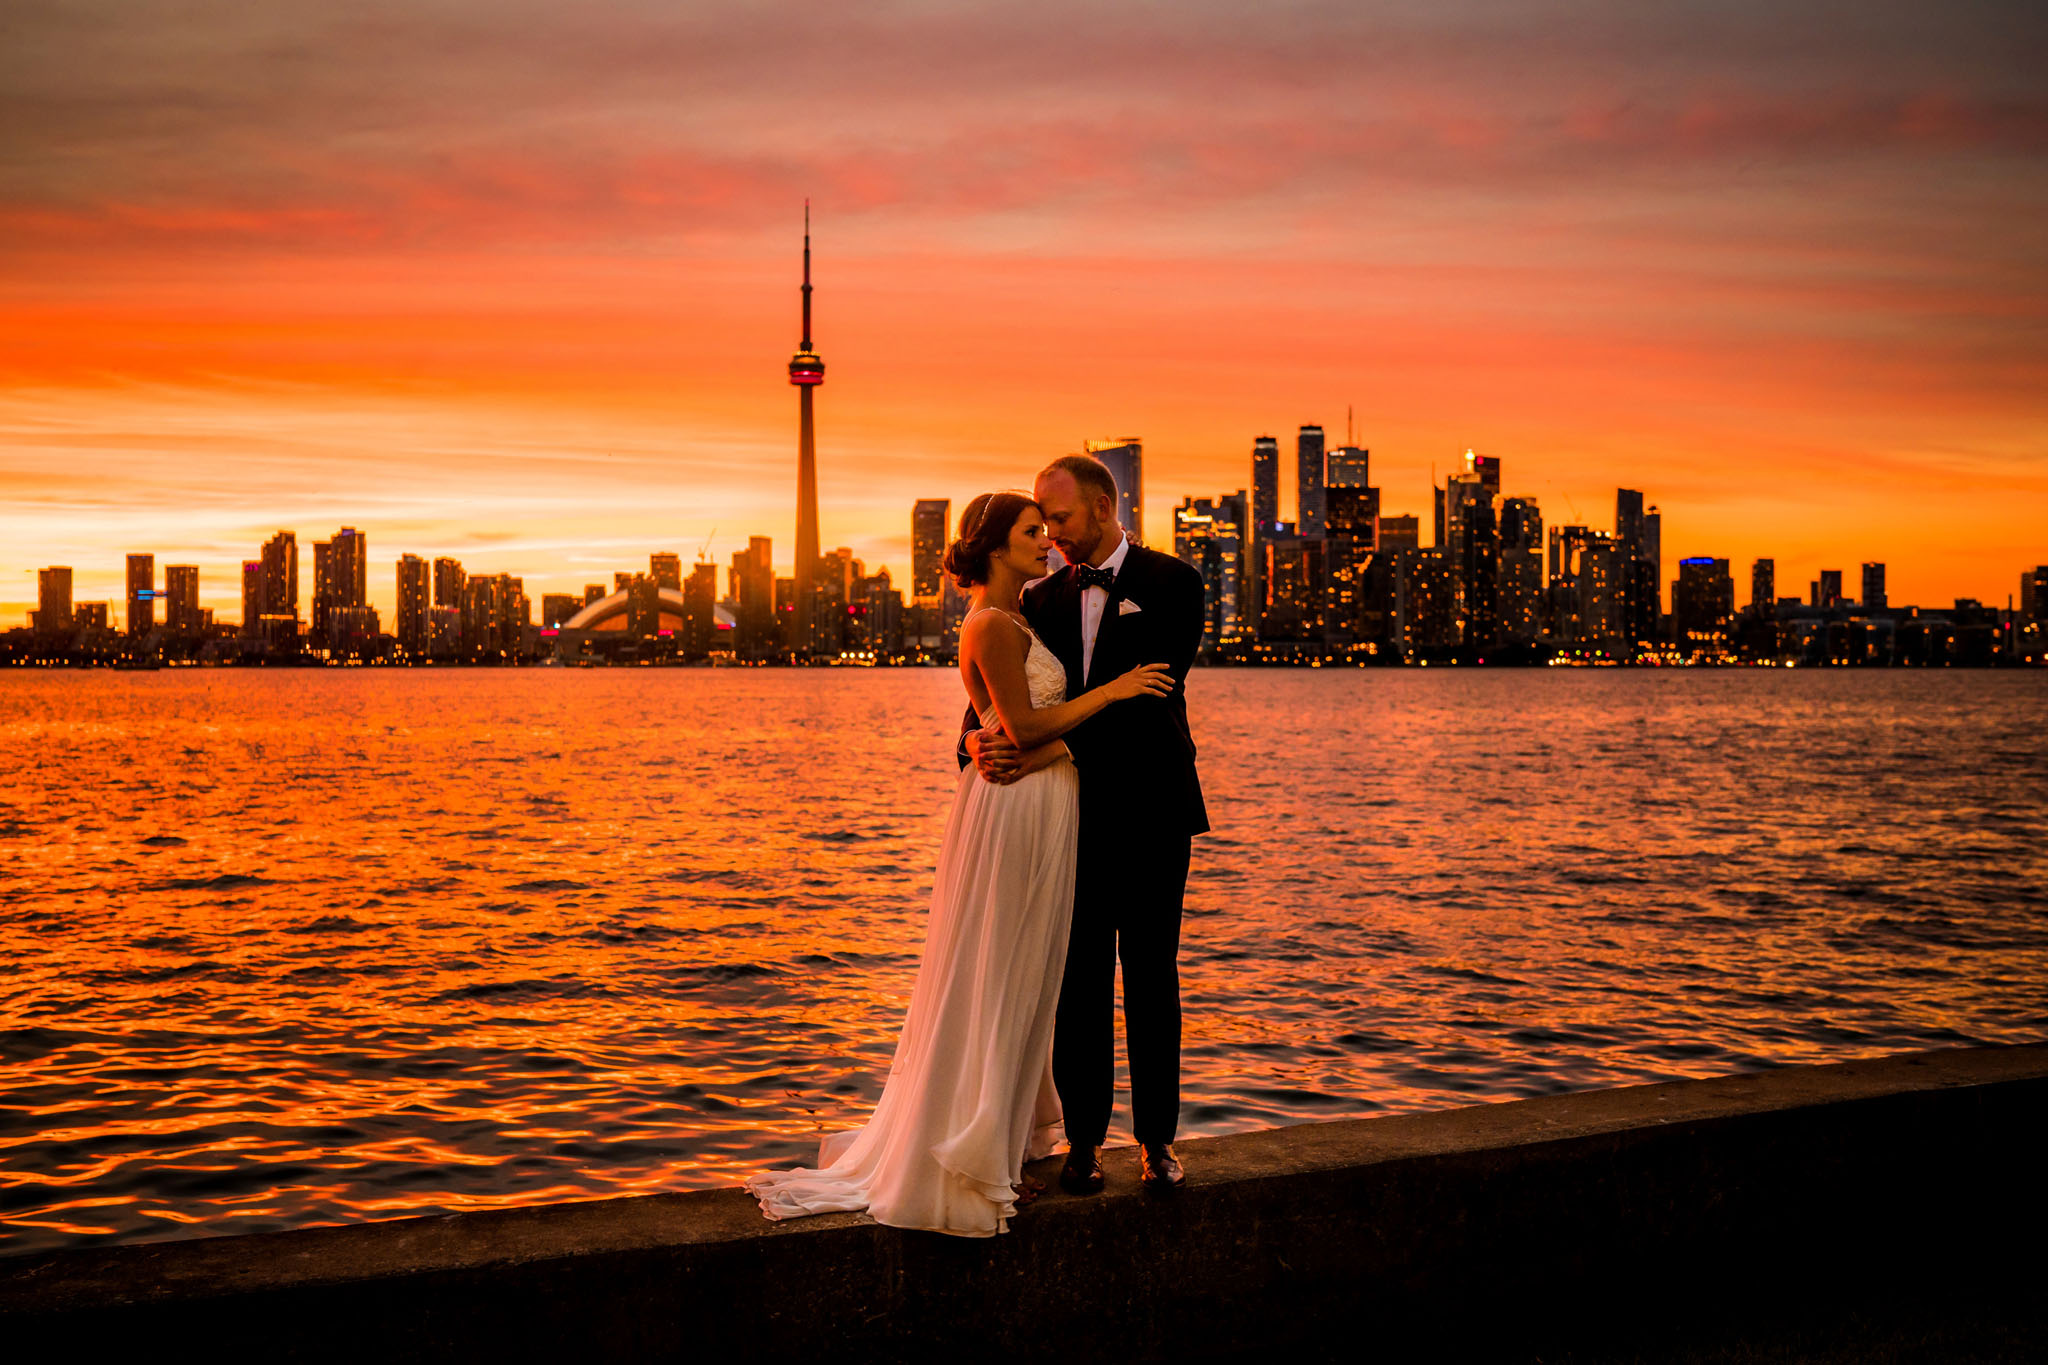 Sunset at the Royal Canadian Yacht Club. Gorgeous couple with red orange background. This one is definitely going in a frame!